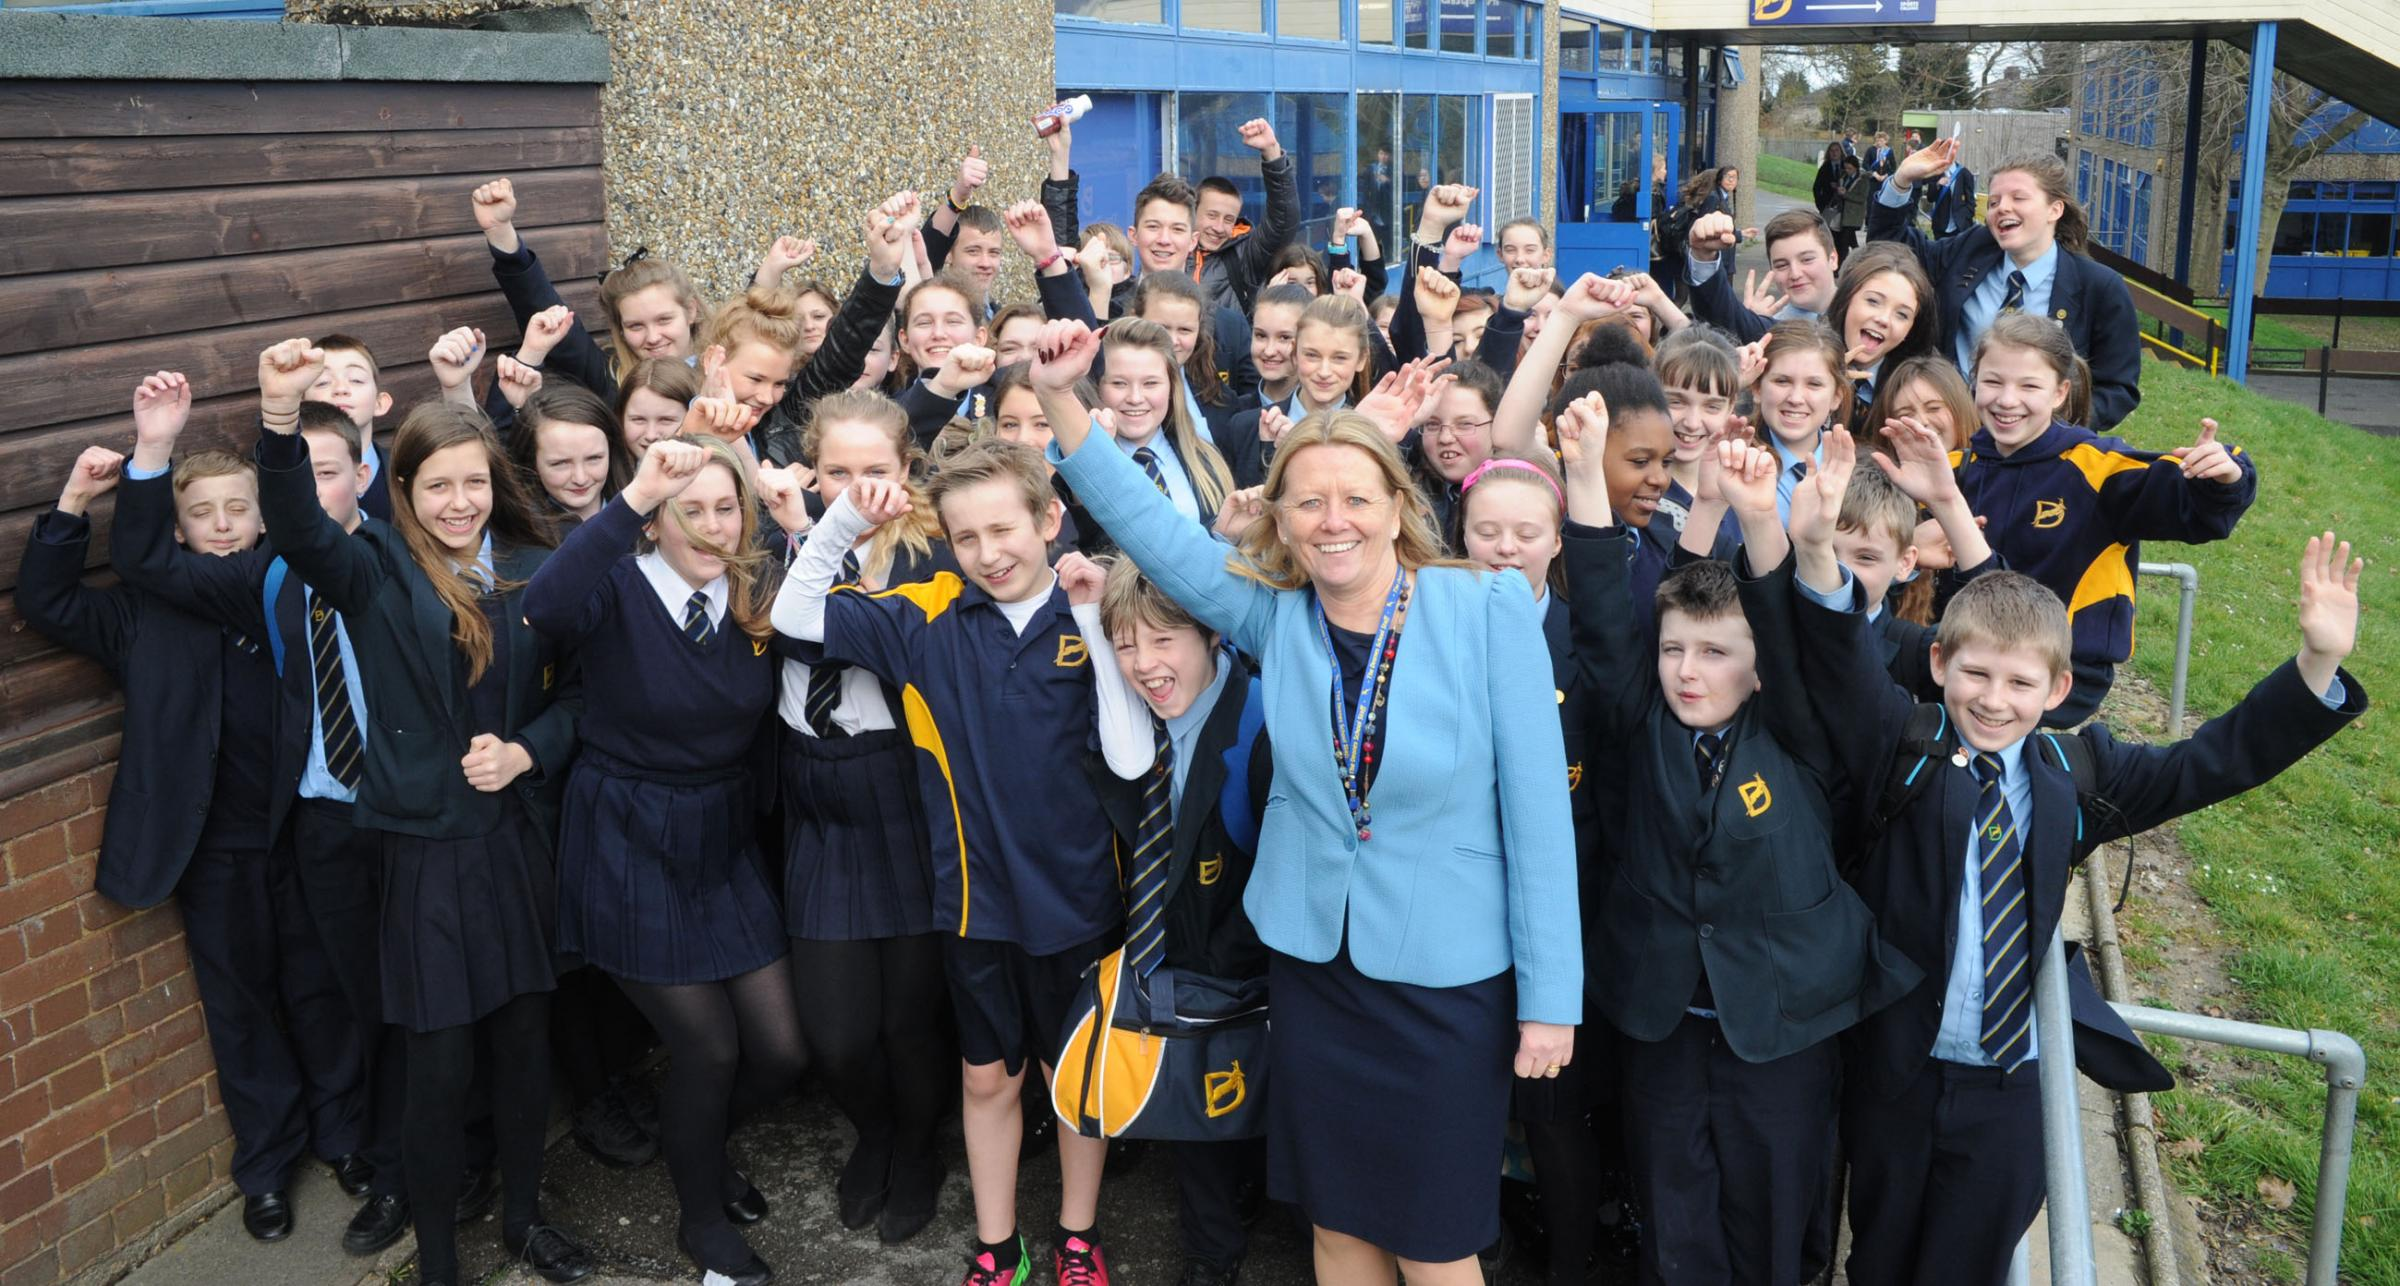 Celebrations! Headteacher Jan Atkinson with happy children at the Deanes School